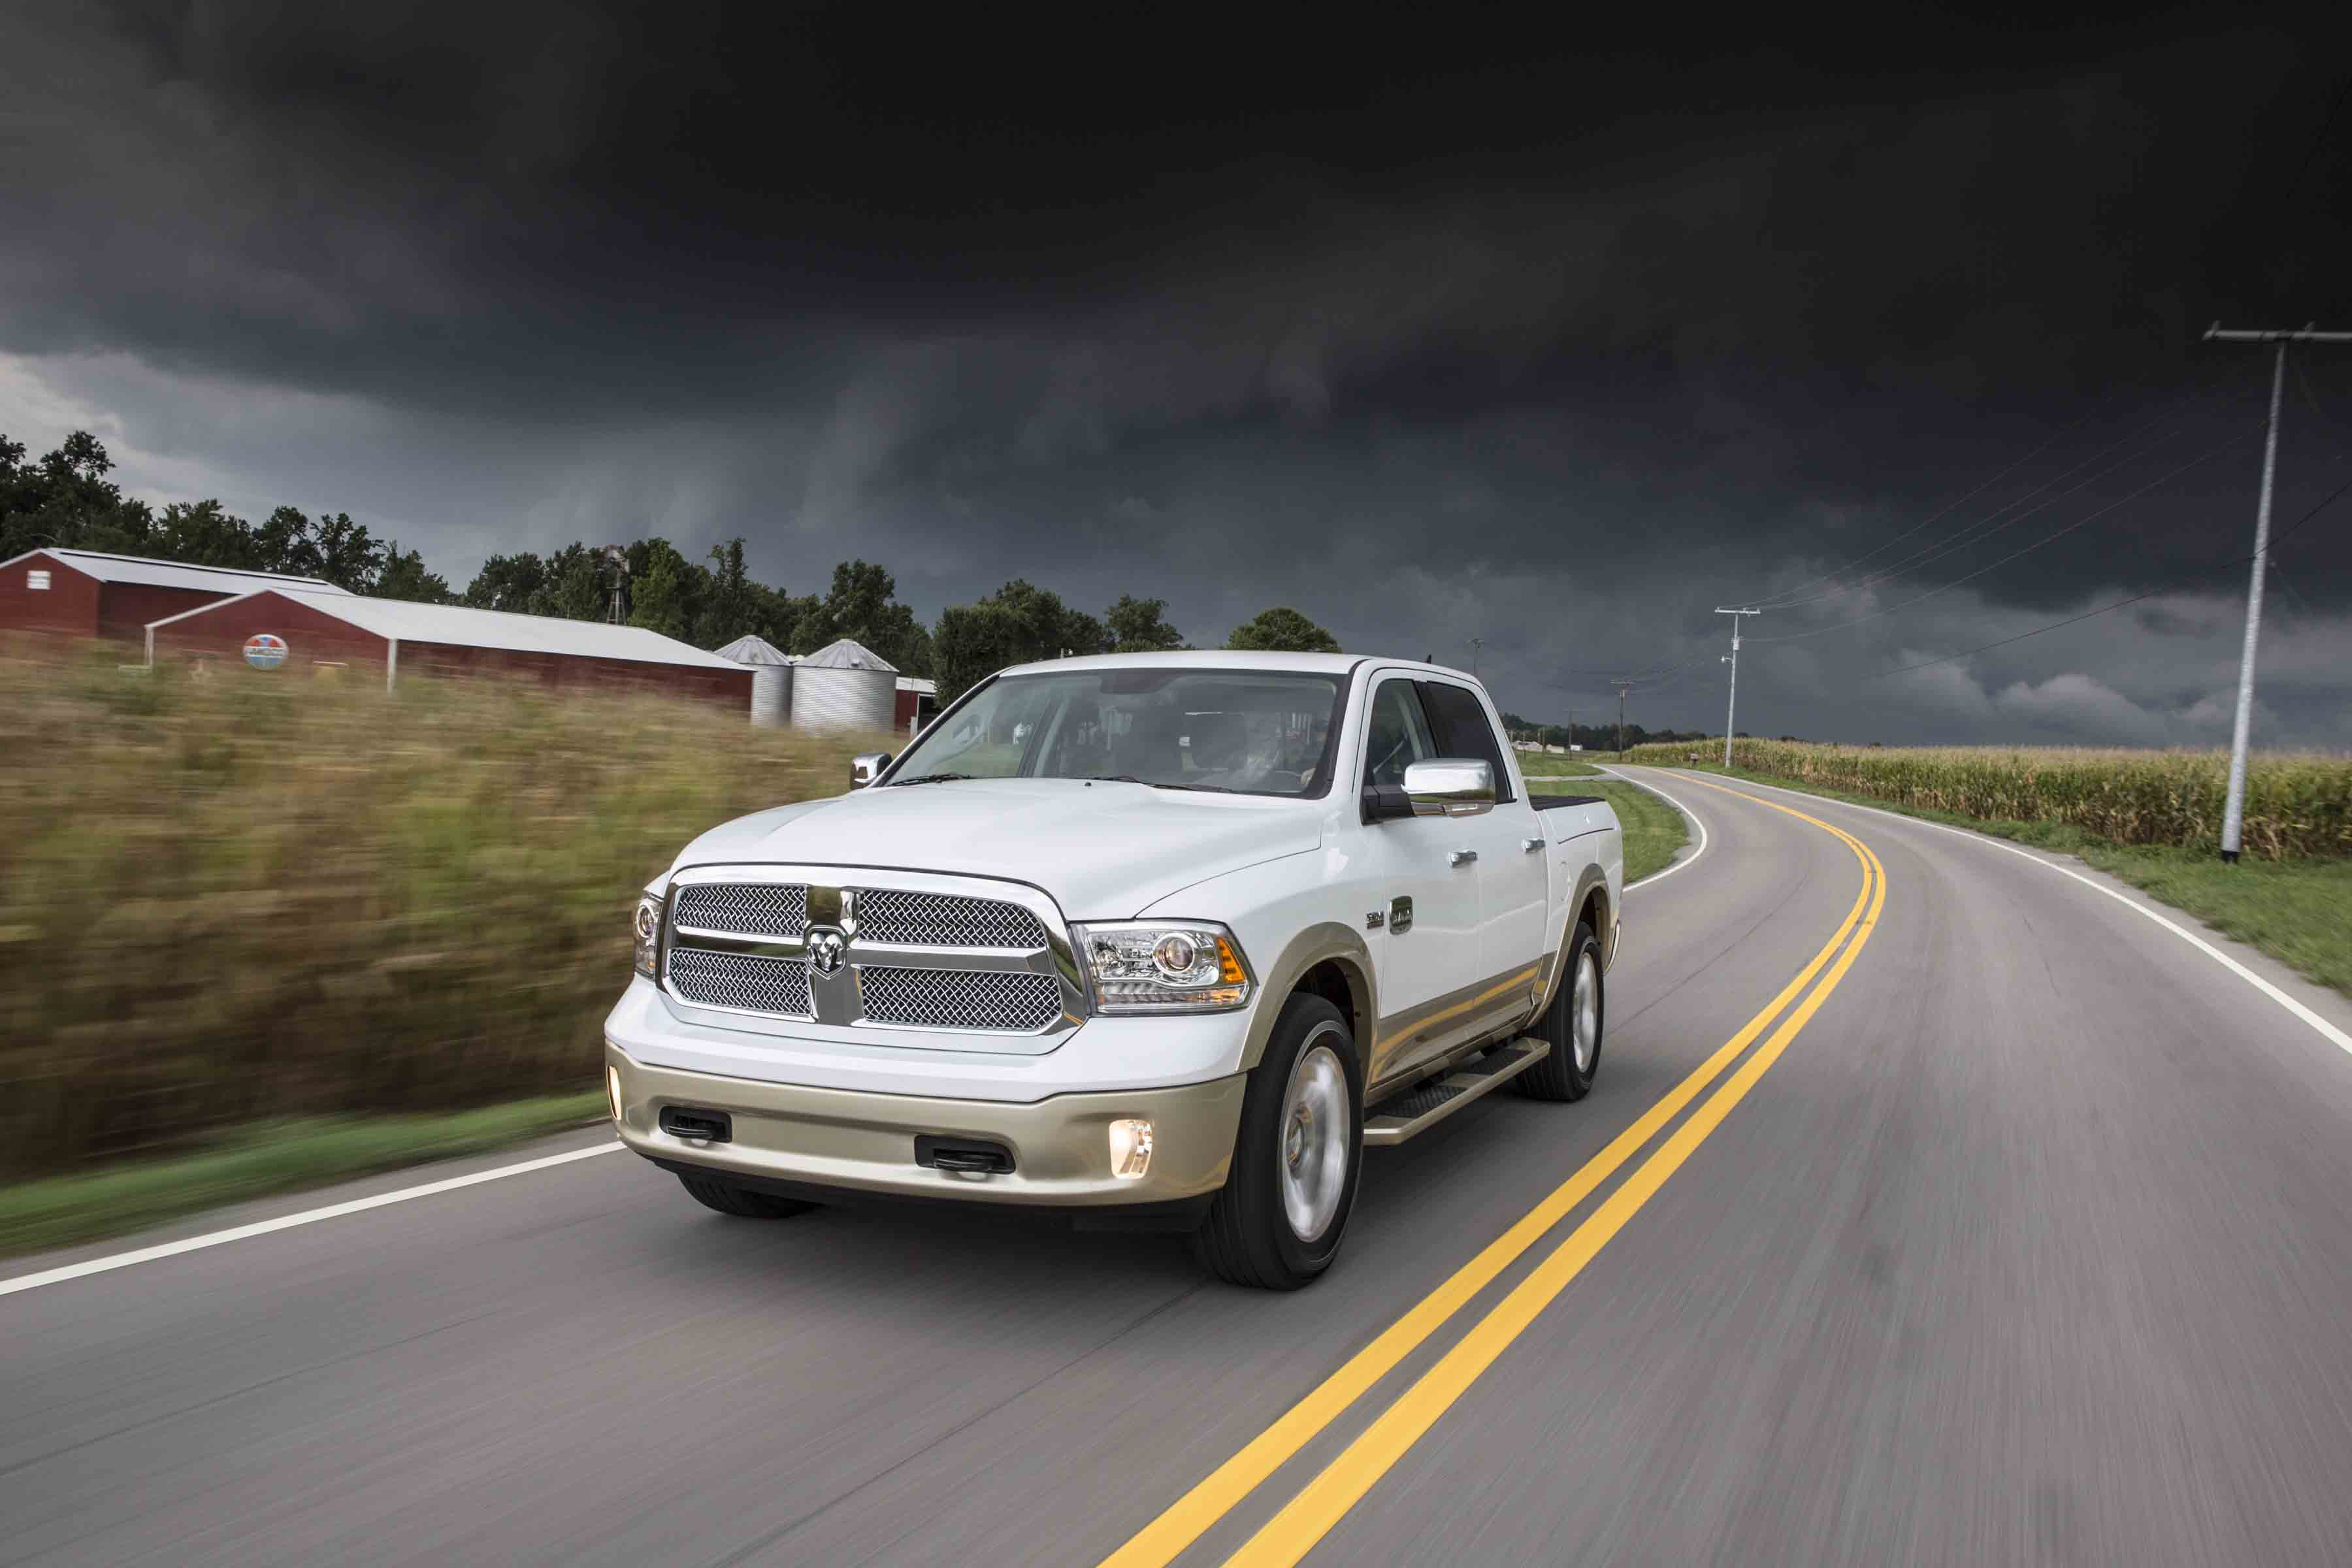 find a used ram model at your local albany ny ram dealership